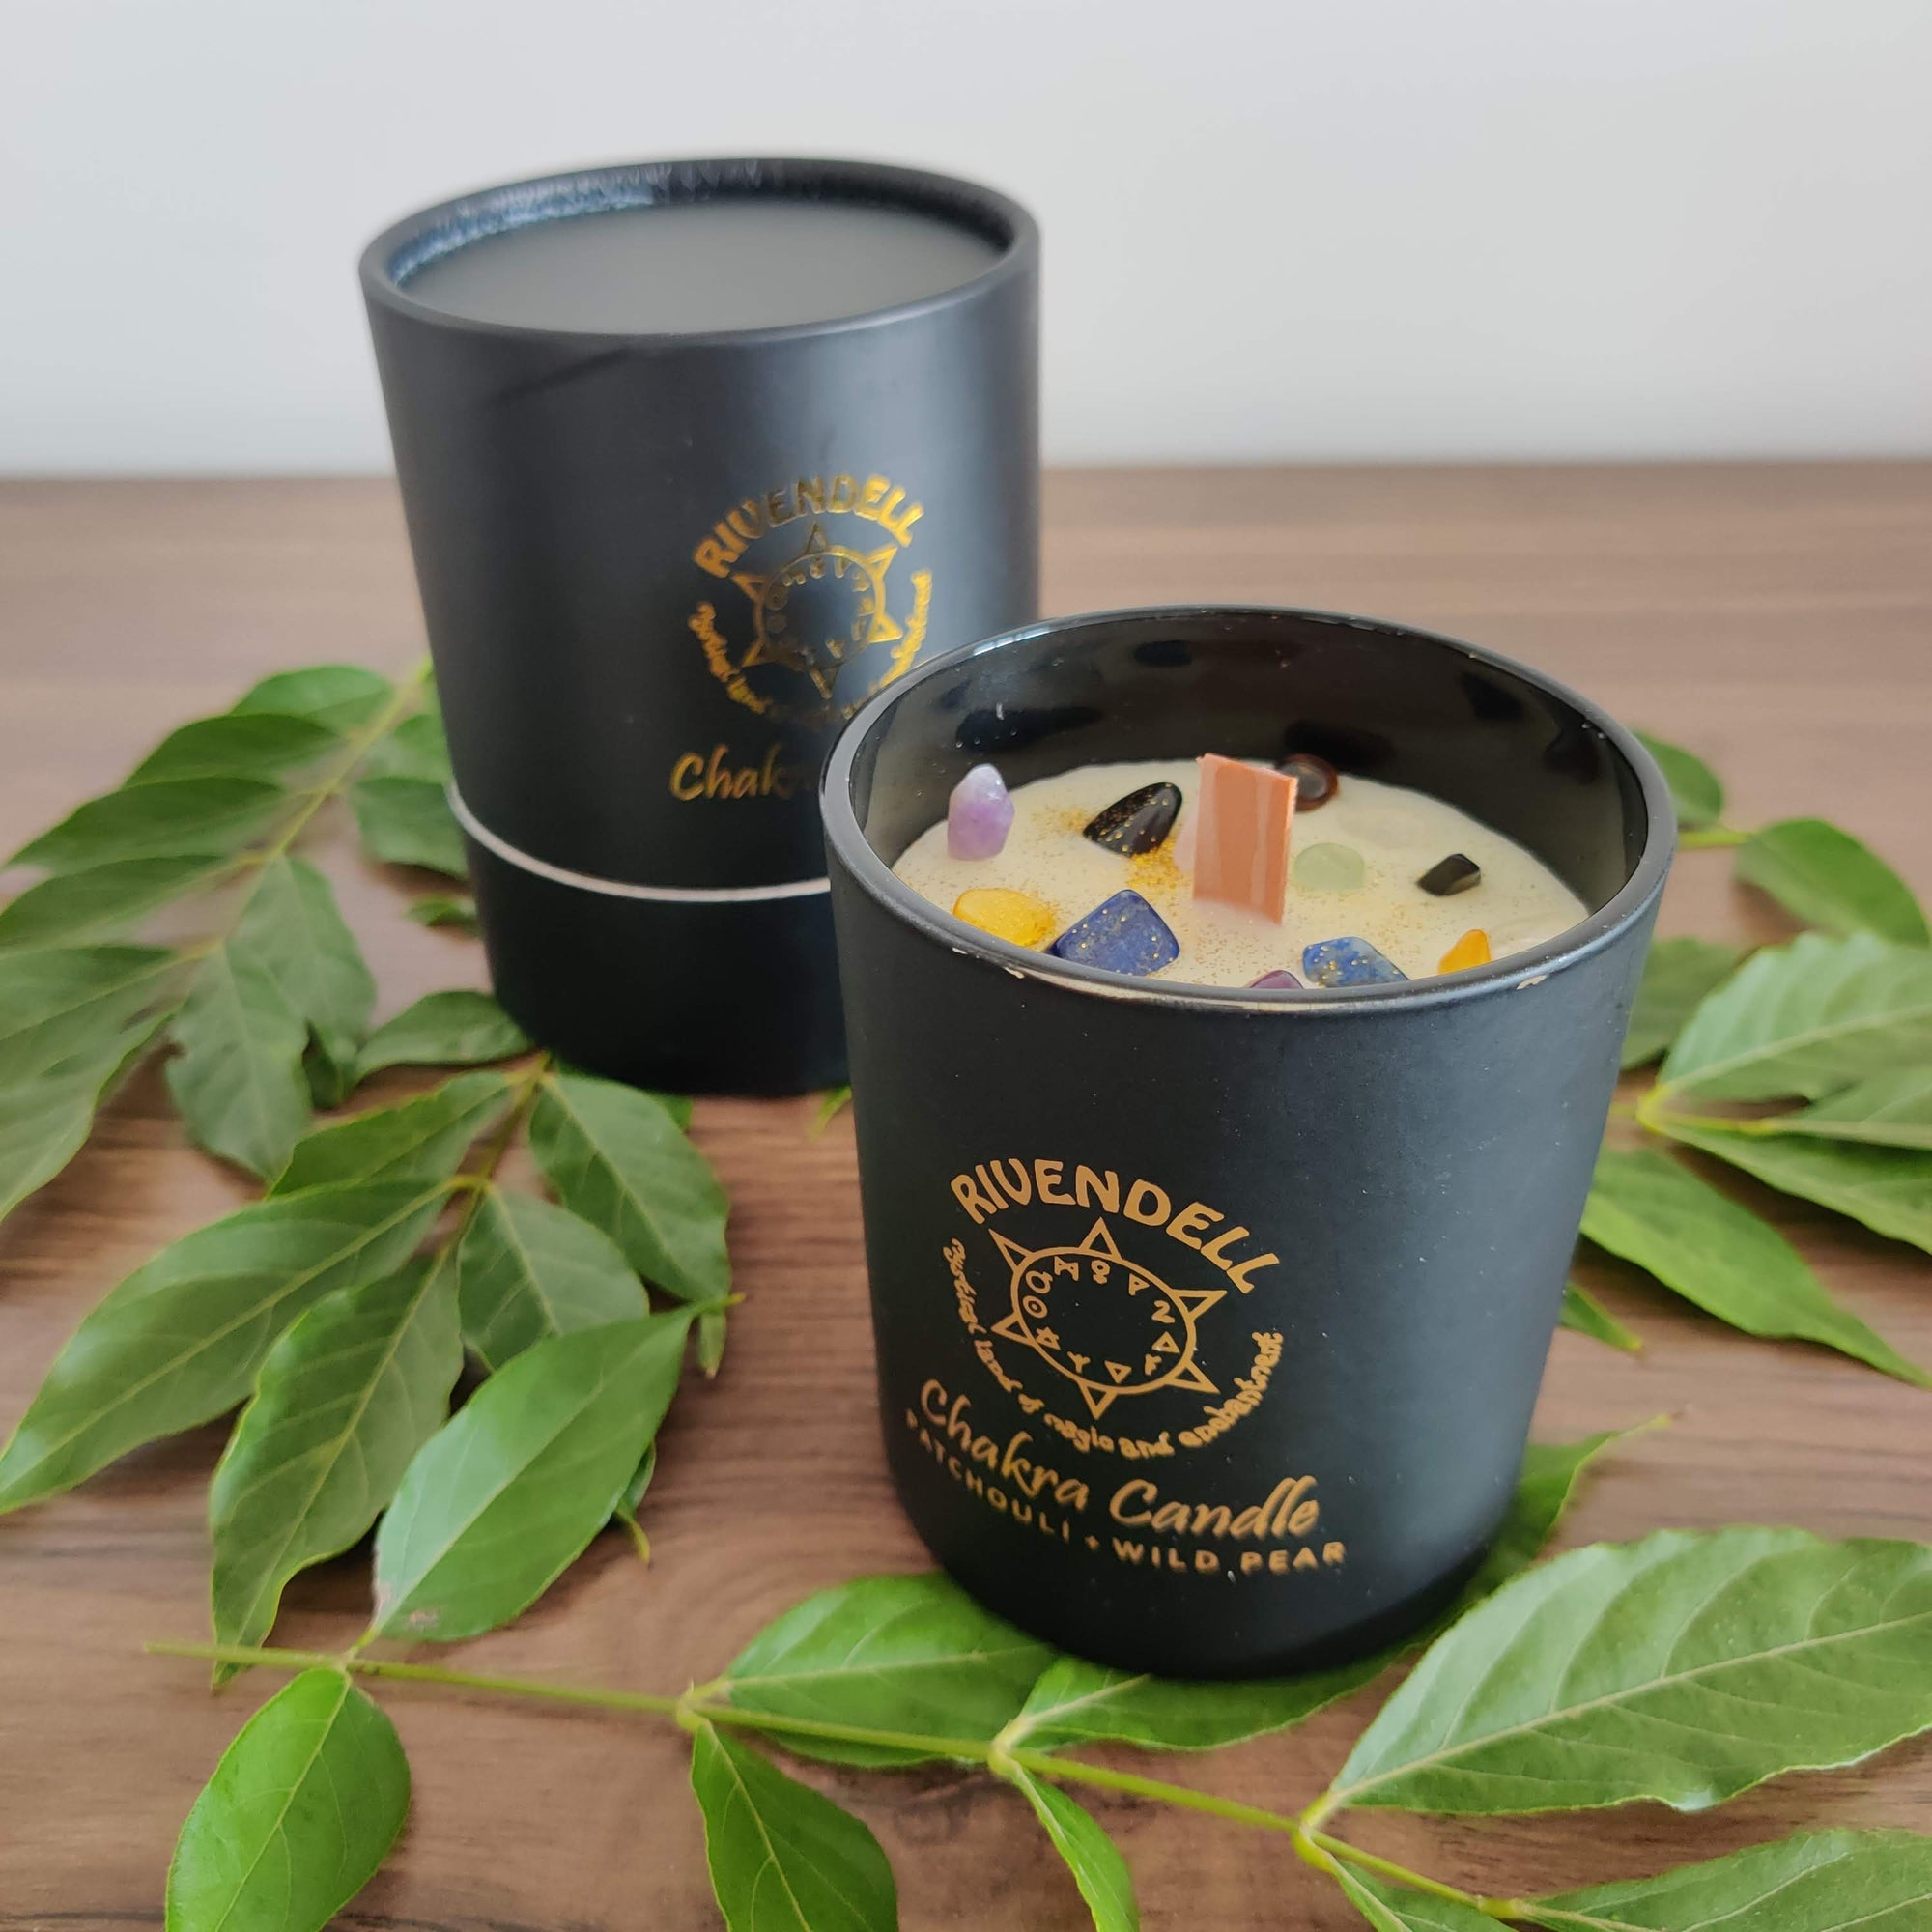 Rivendell's Chakra Candle: Patchouli and Wild Pear - Rivendell Shop NZ